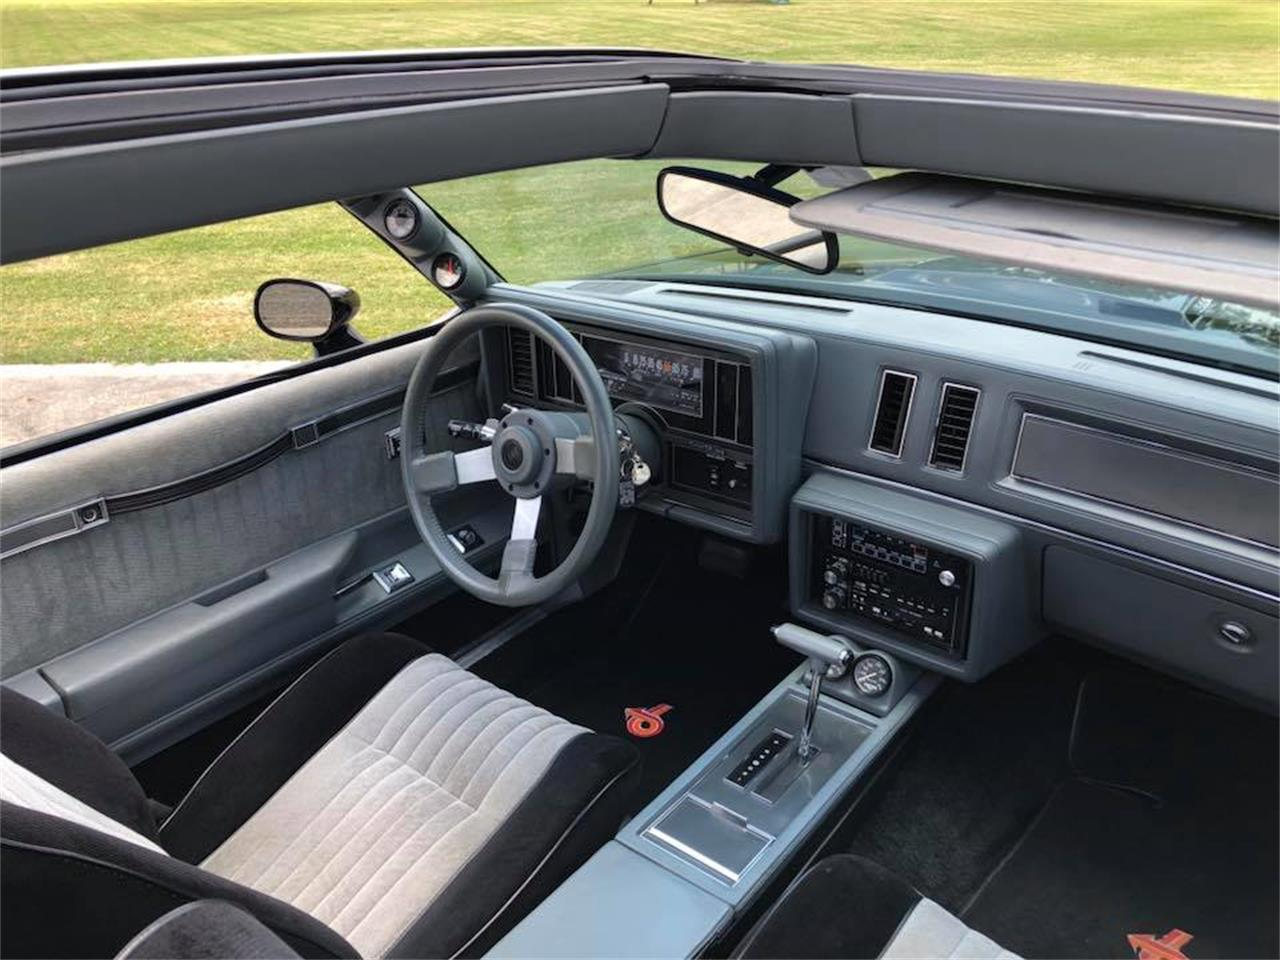 Large Picture of 1986 Buick Grand National located in Texas Offered by a Private Seller - Q8HL